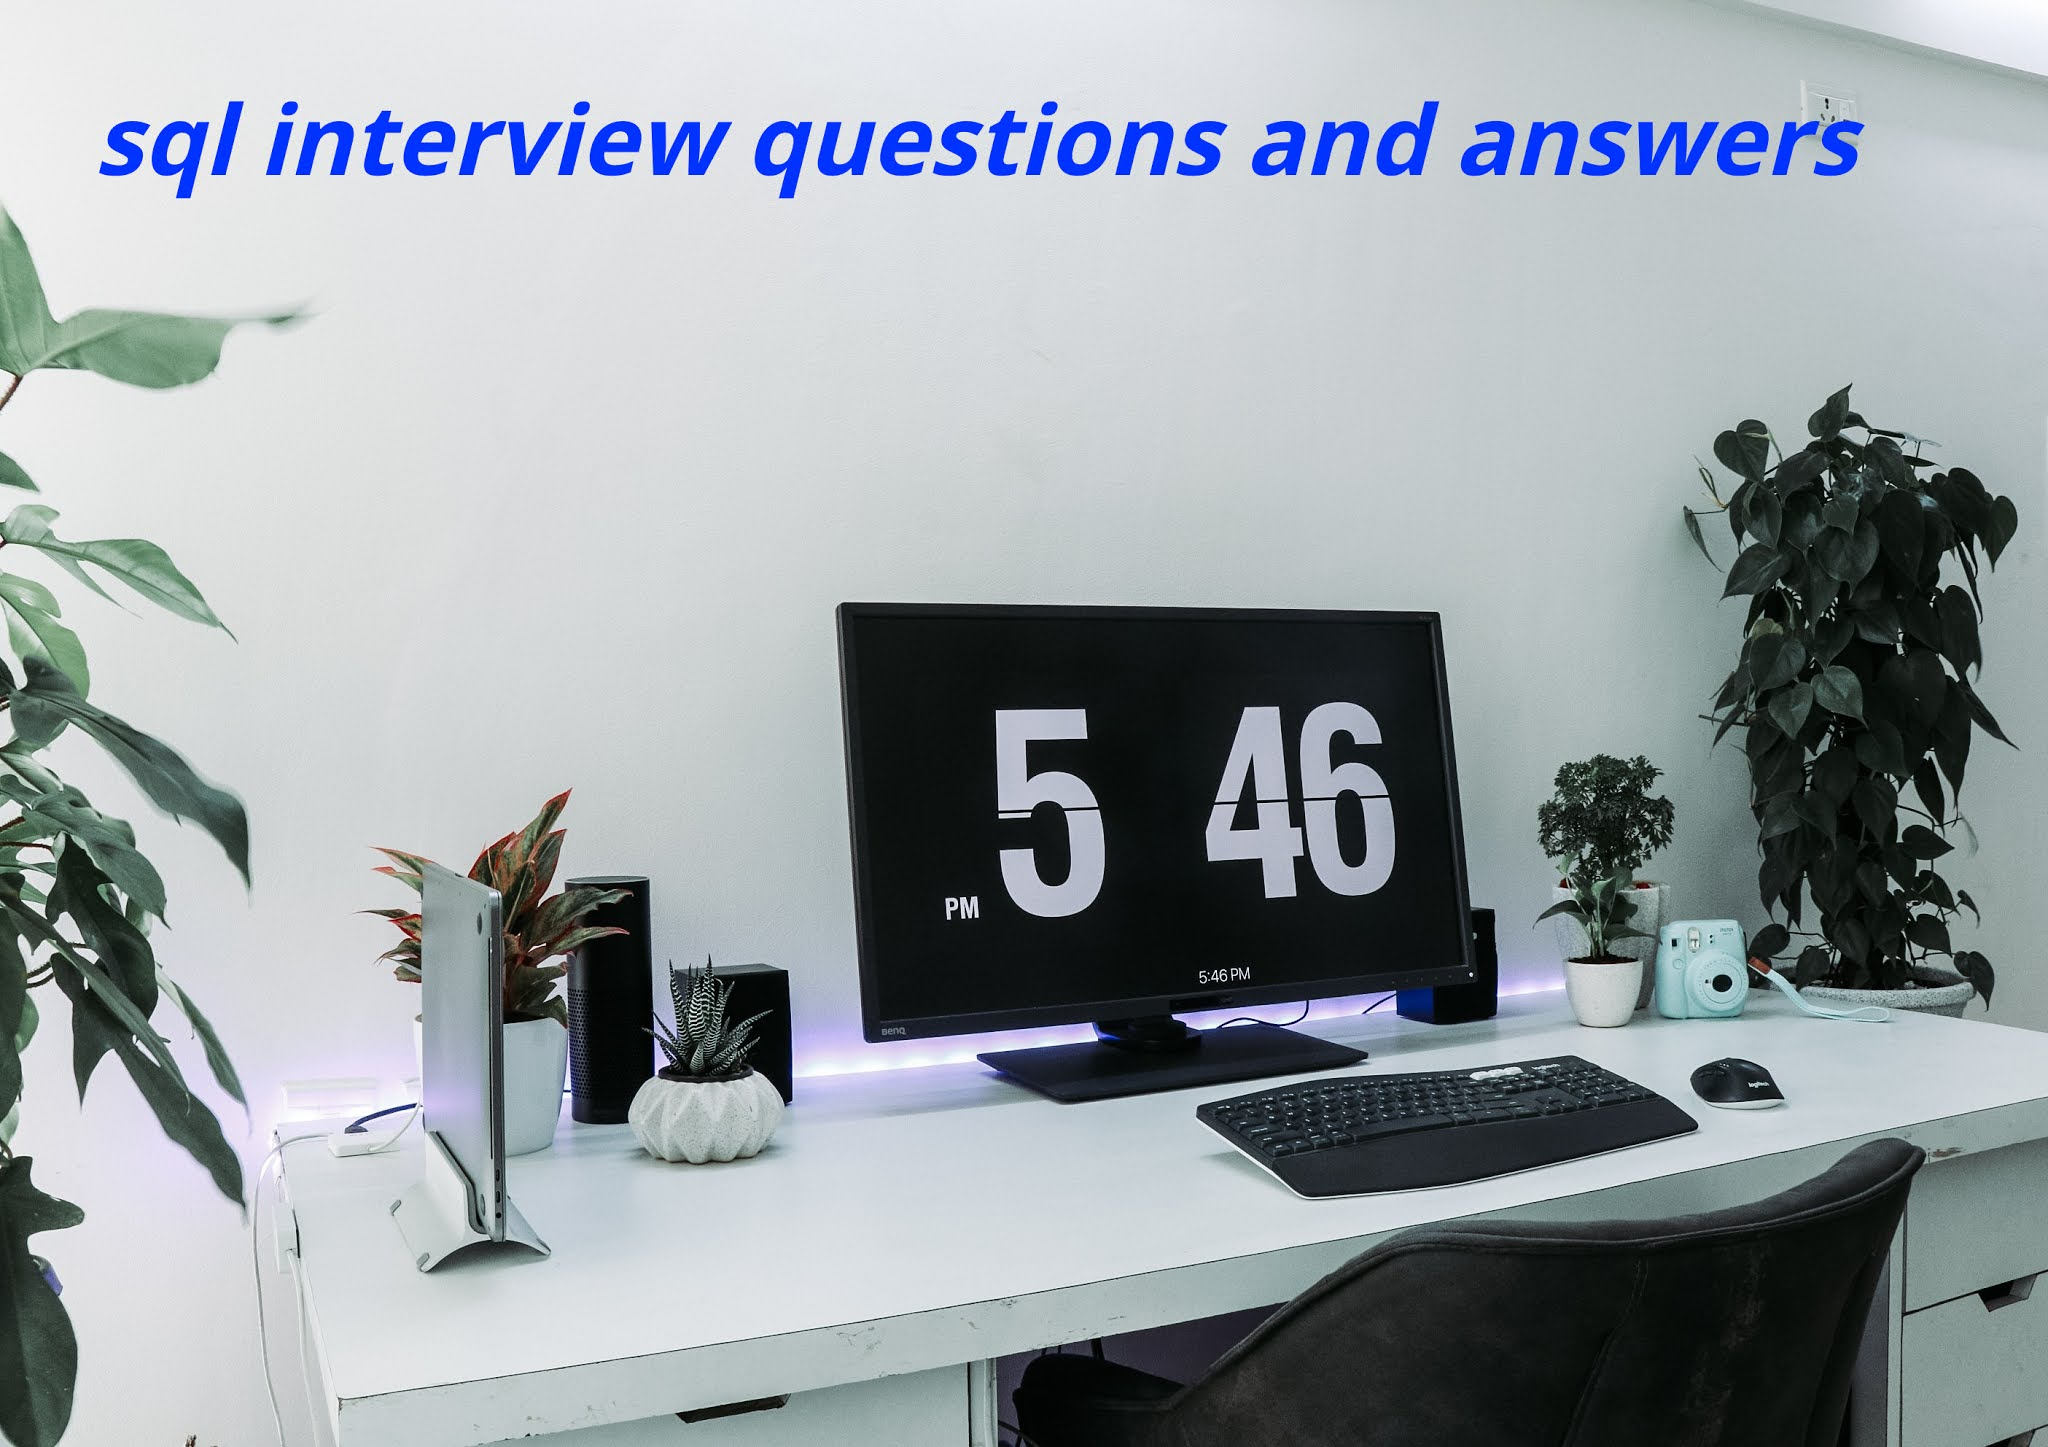 Basic sql interview questions and answers